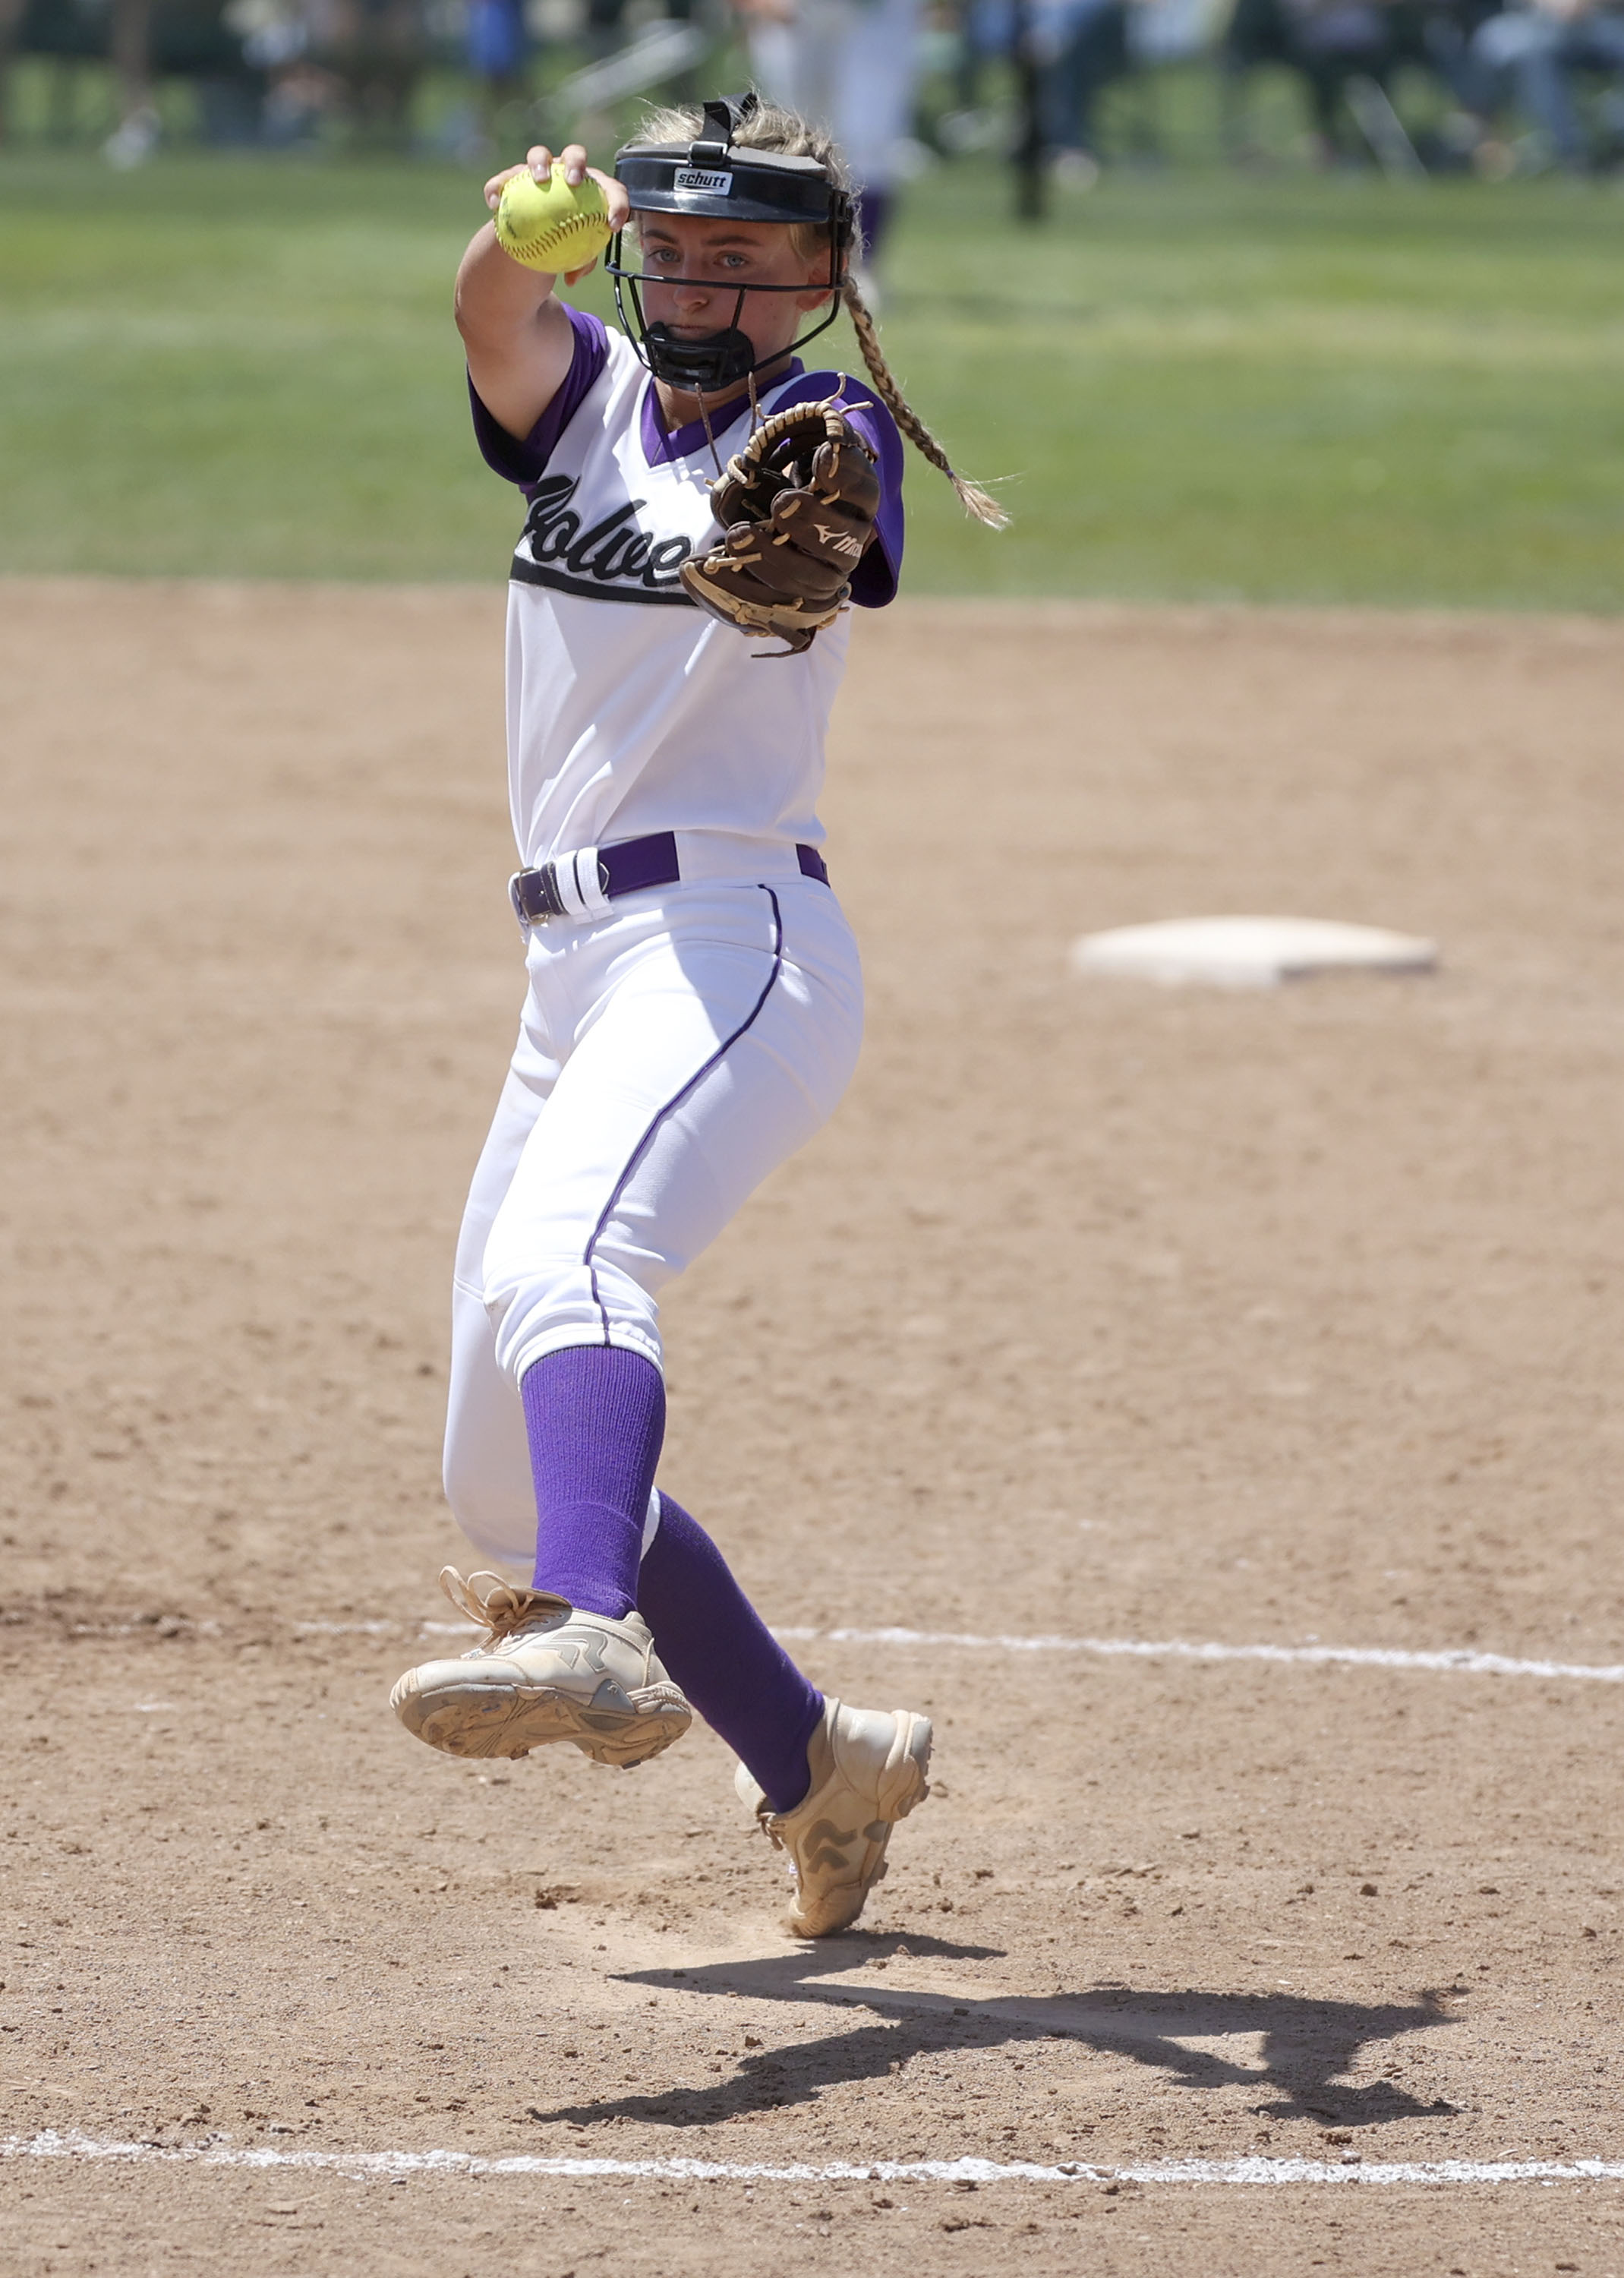 Riverton High School pitcher Kaysen Korth is the Deseret News 6A Softball Player of the Year.